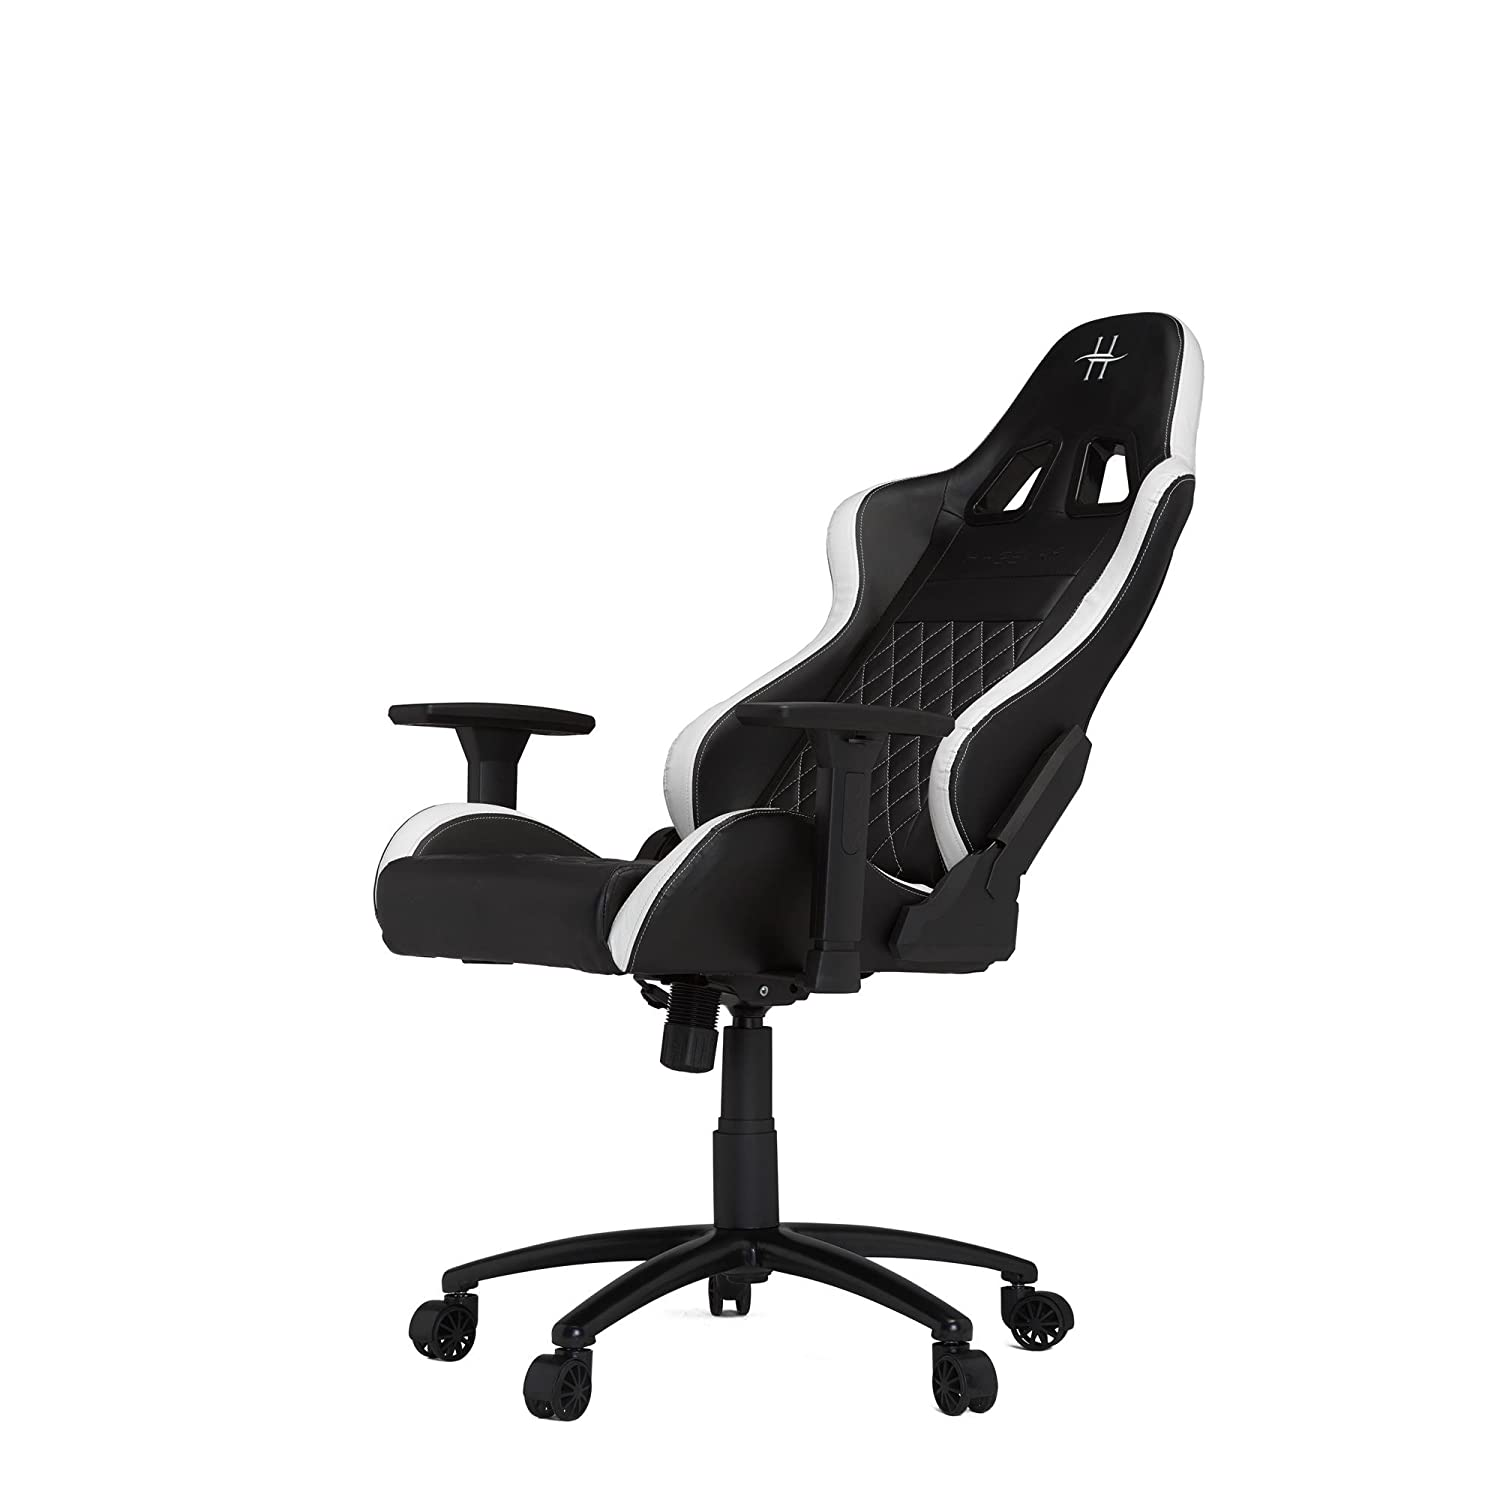 Amazon.com: HHGears XL 500 Series PC Gaming Racing Chair Black and White with Headrest/Lumbar Pillows: Kitchen & Dining